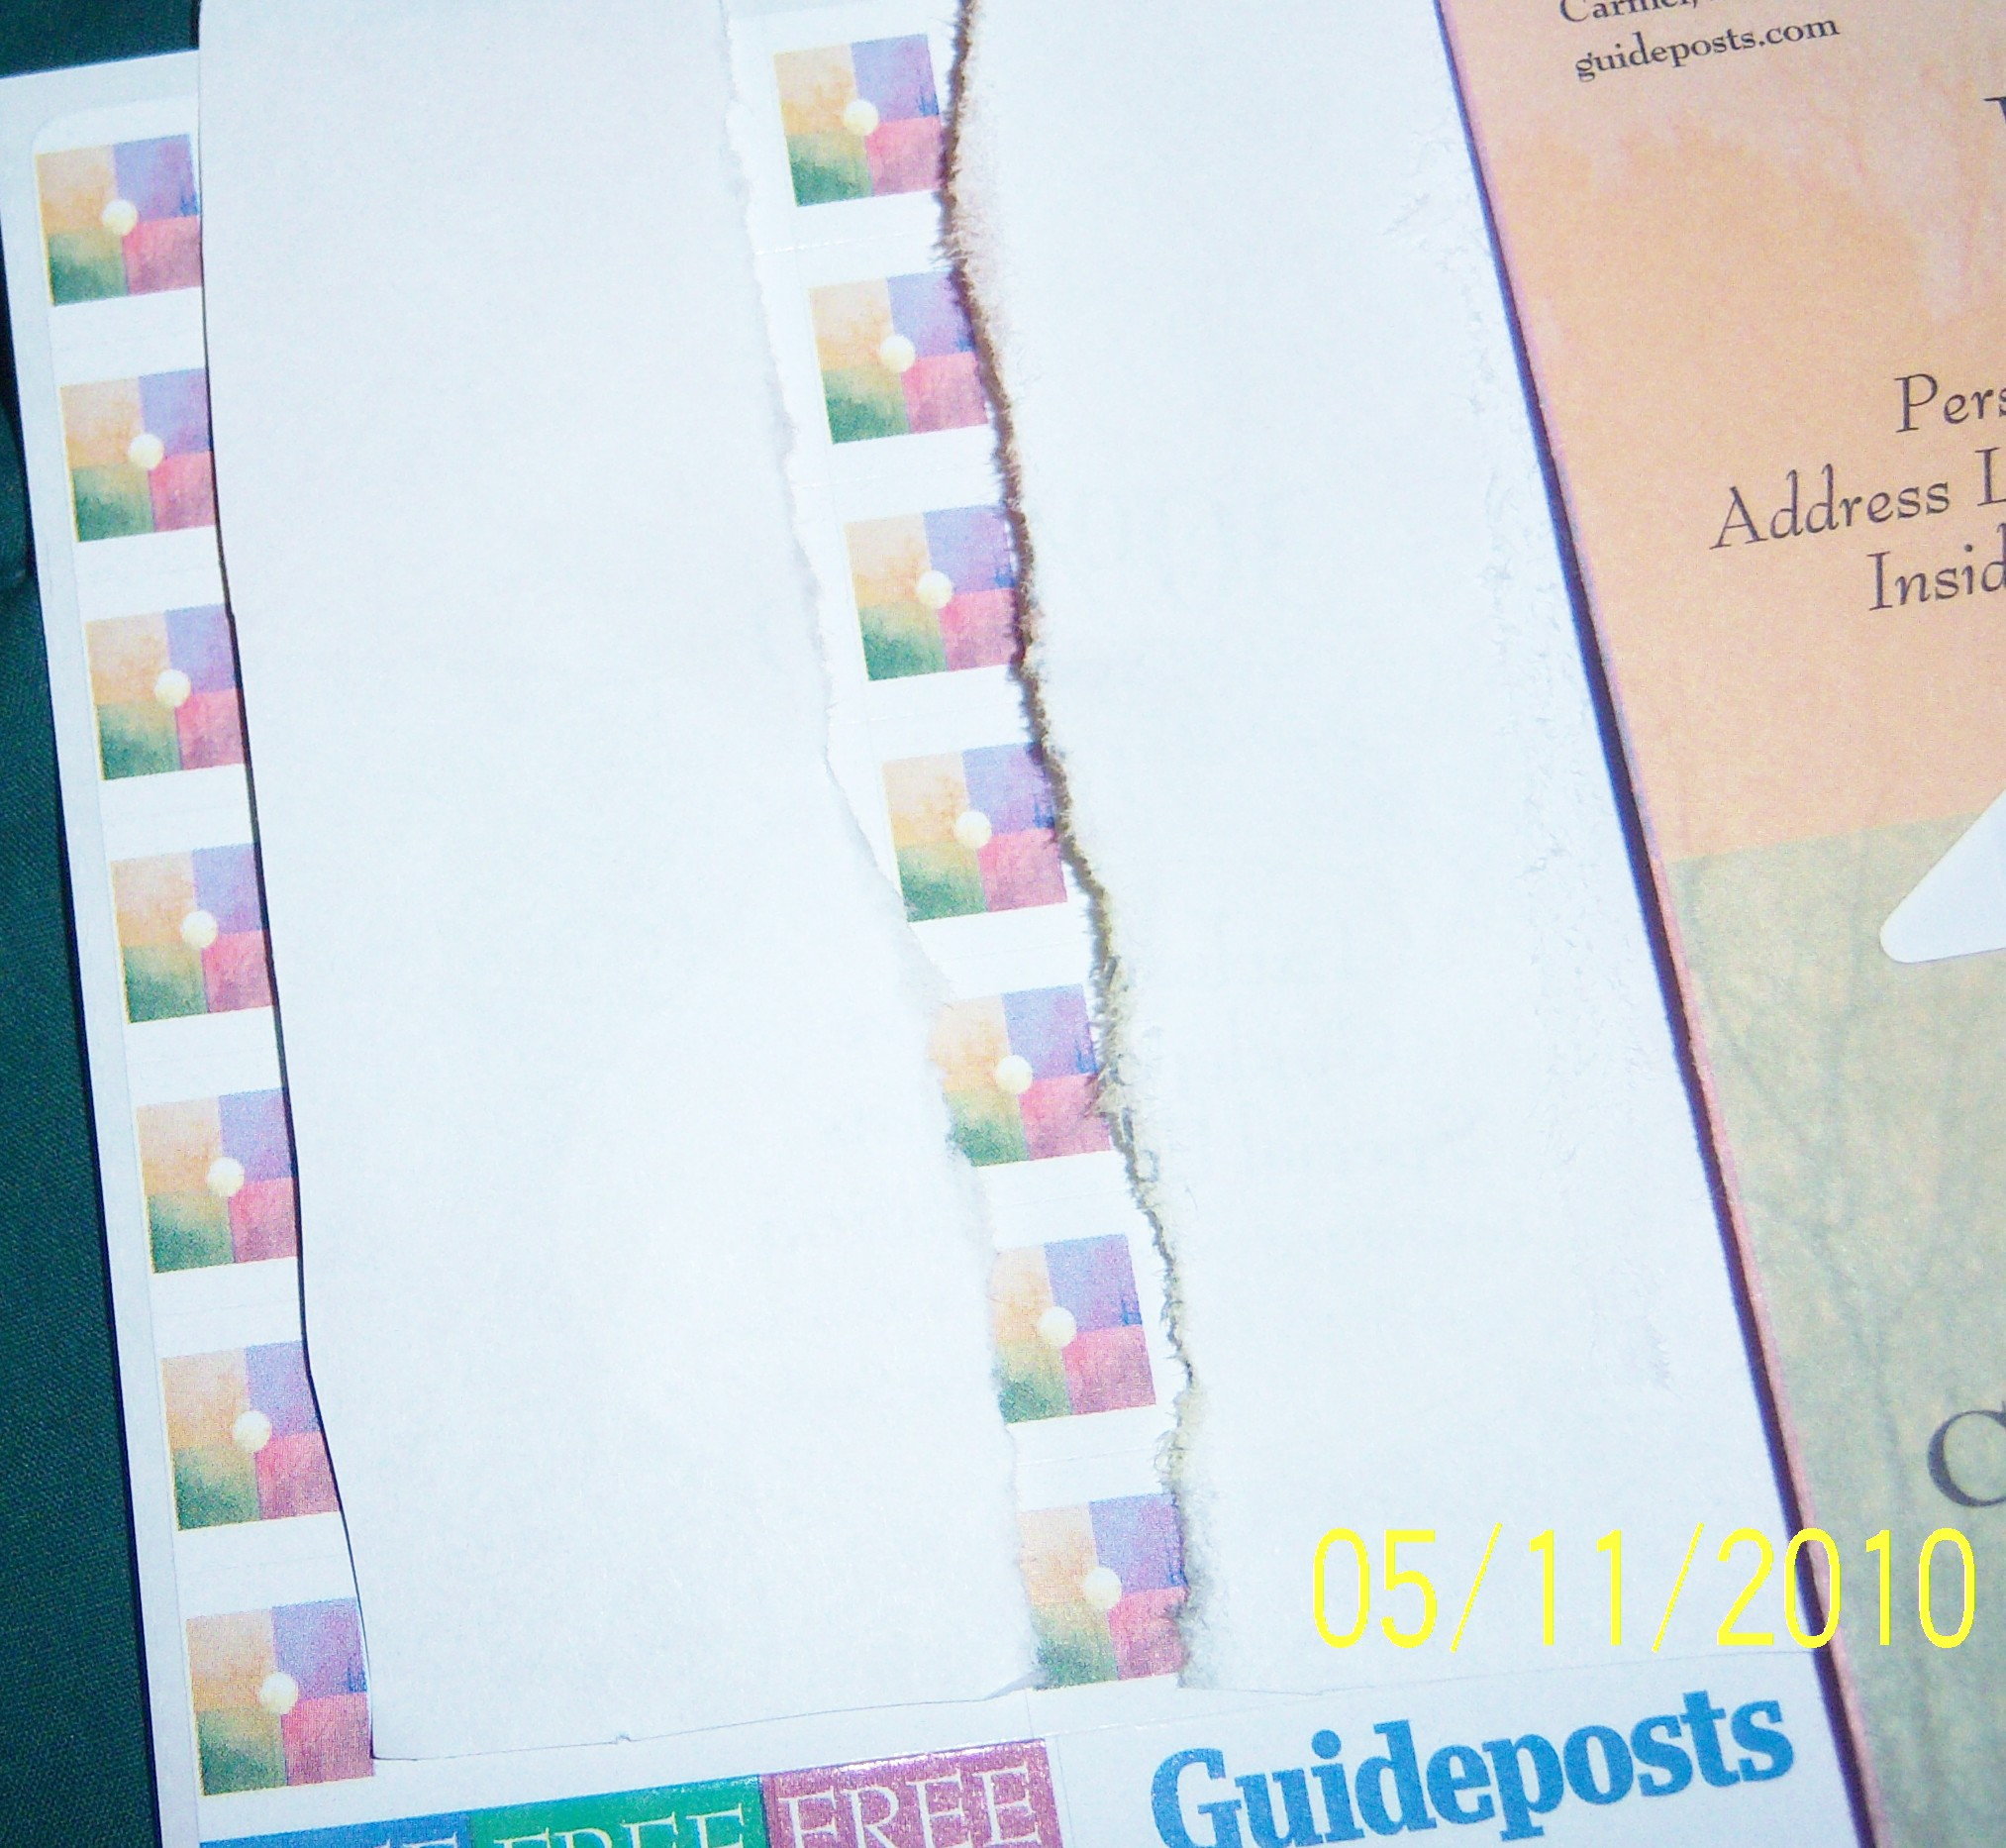 Address Labels From GuidePosts • Free Stuff Times What I Got